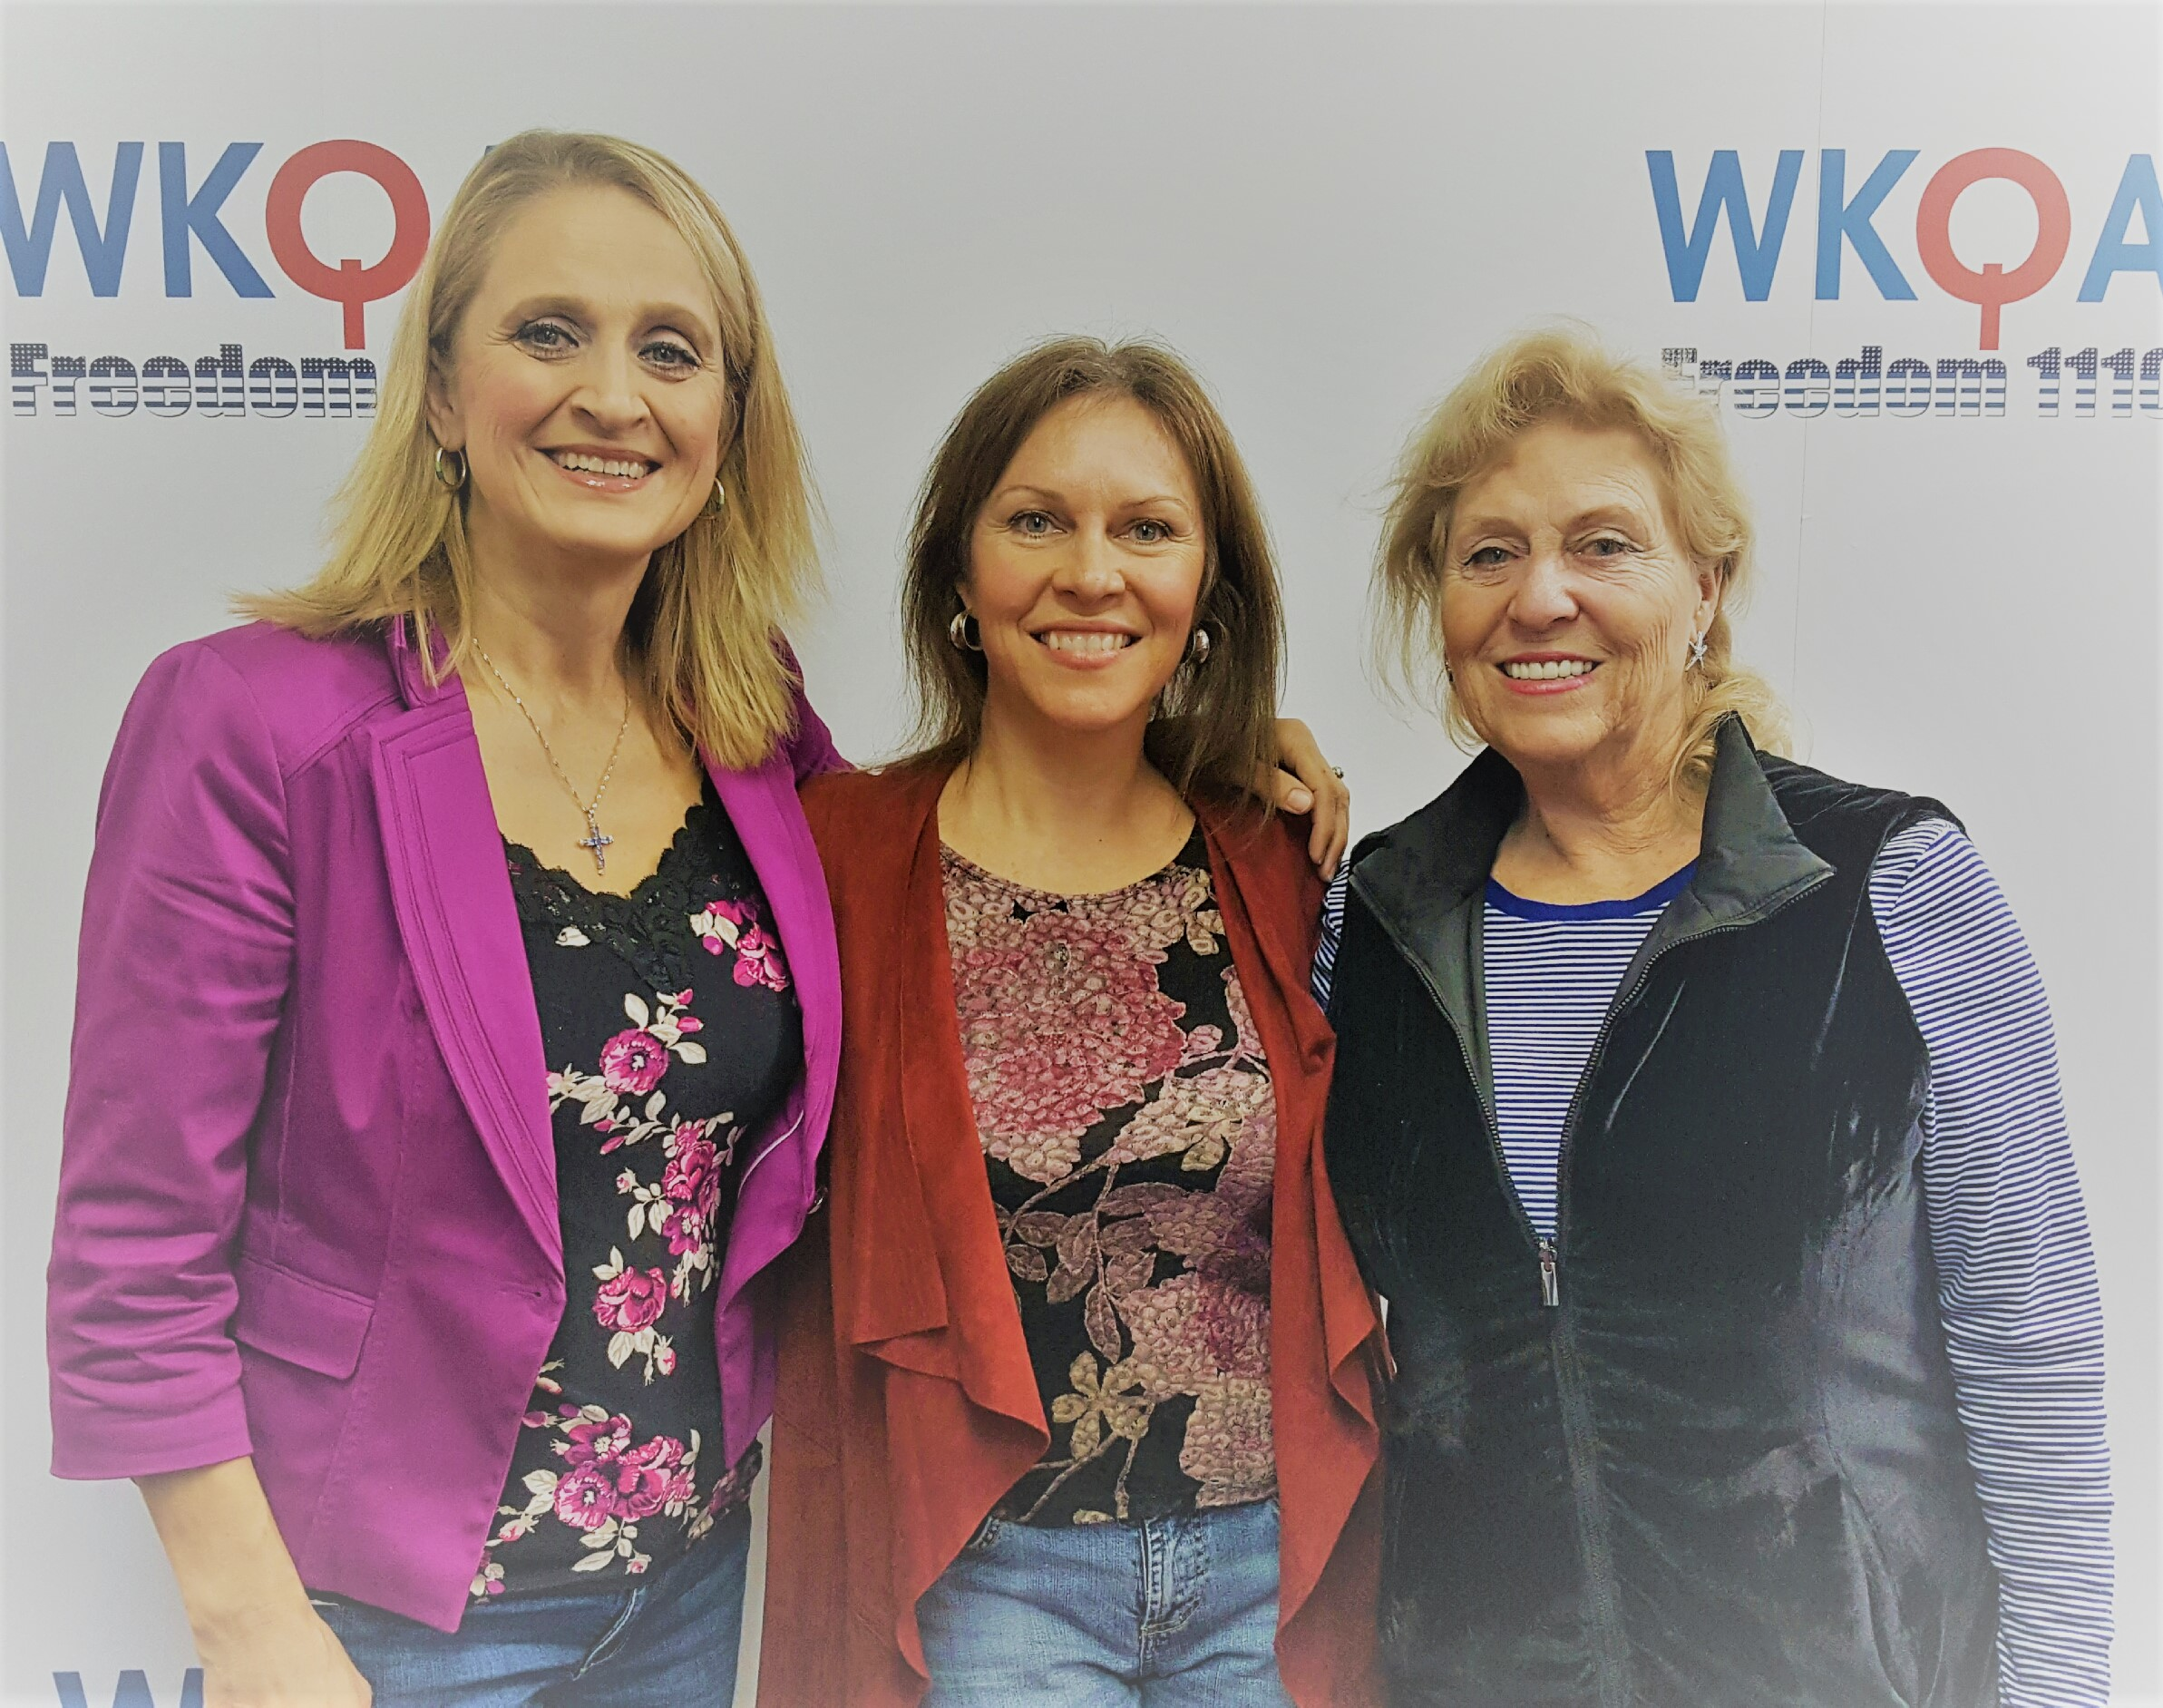 Dr. Christine Bacon with guests Nora Firestone and her mother Karen Wahl posing at the WKQA studios after a great discussion about gratitude.